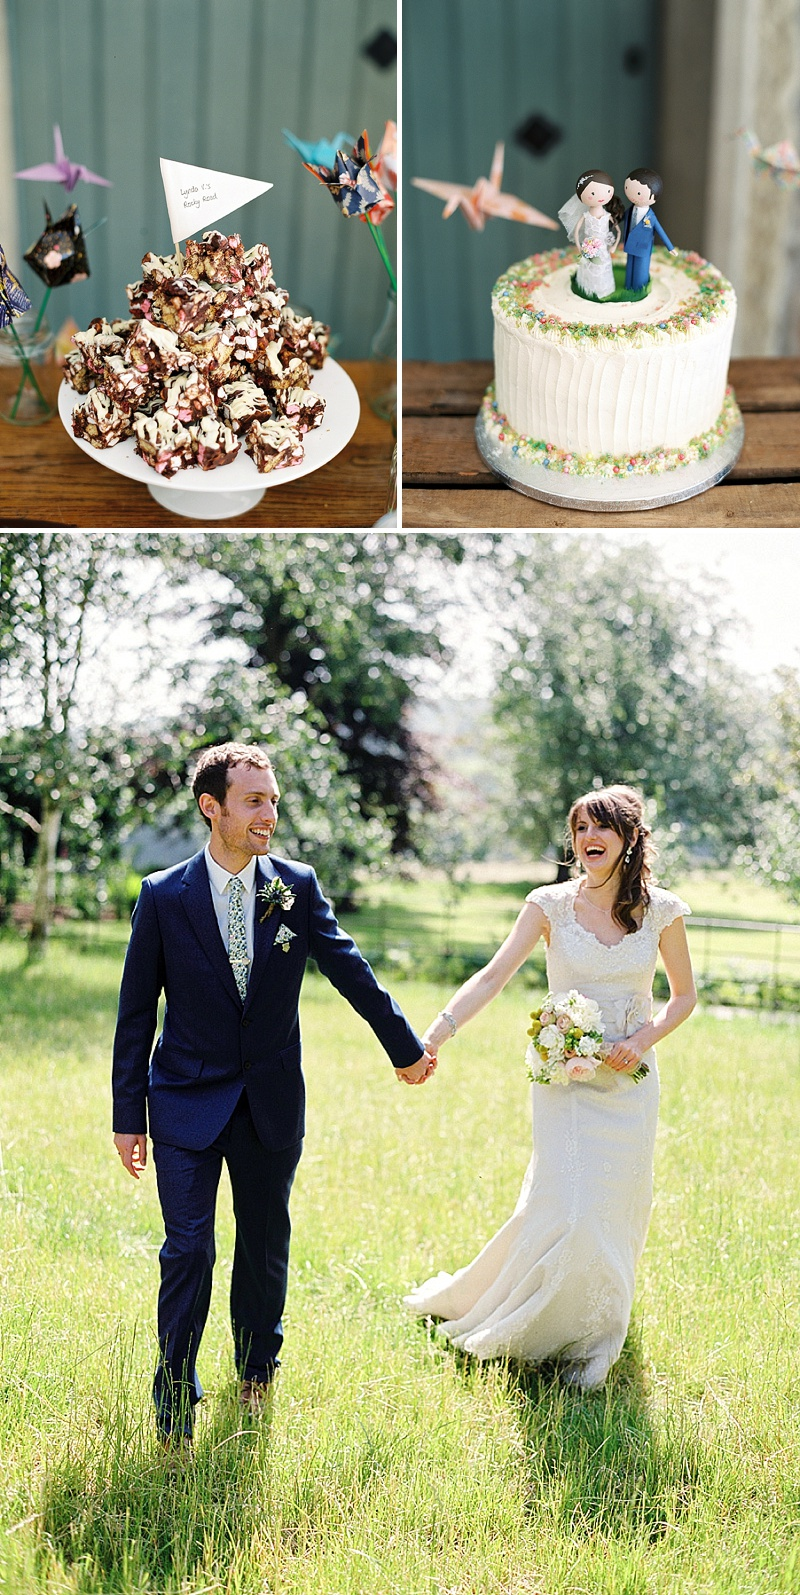 A Rustic barn wedding in Yorkshire felicia by Amanda Wyatt dress_0023